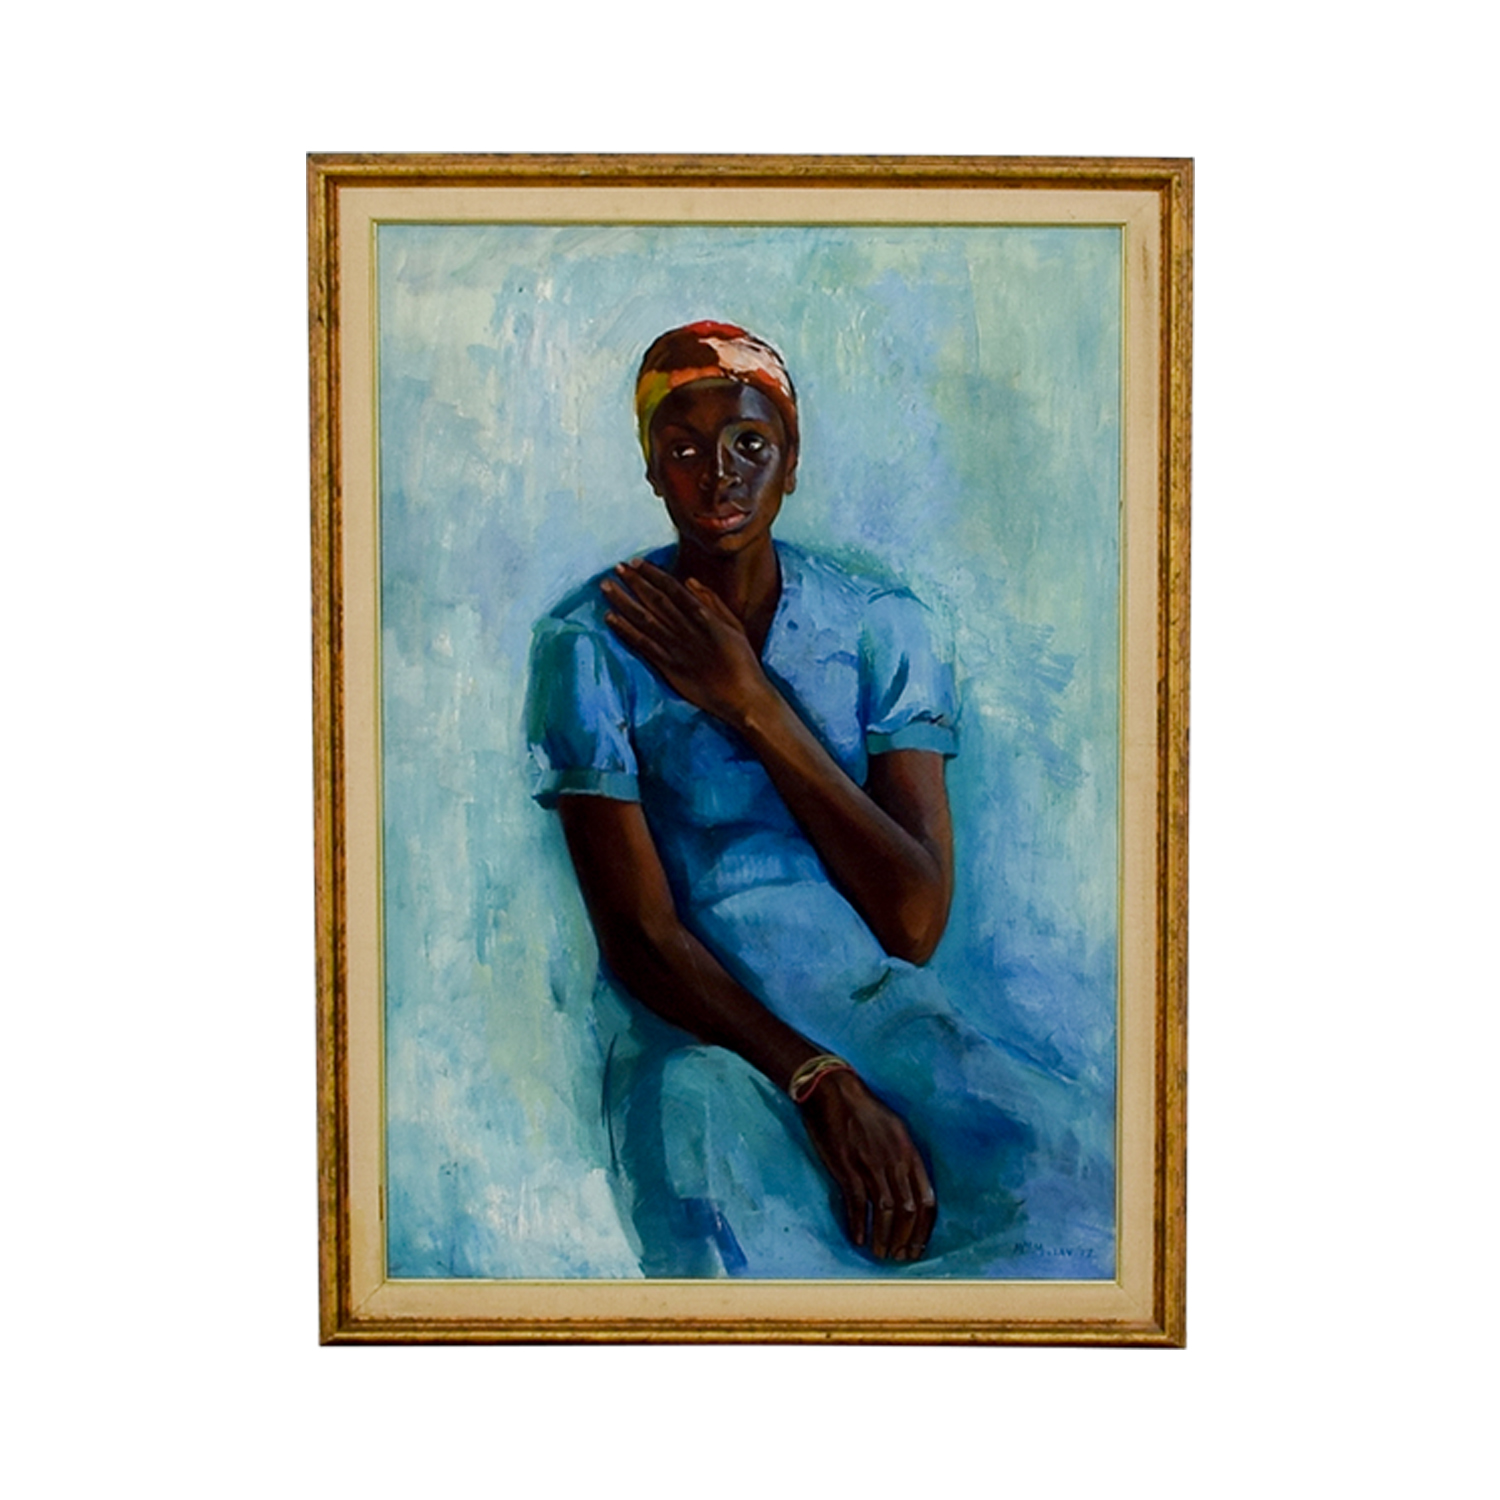 Woman in Blue Framed Print on sale